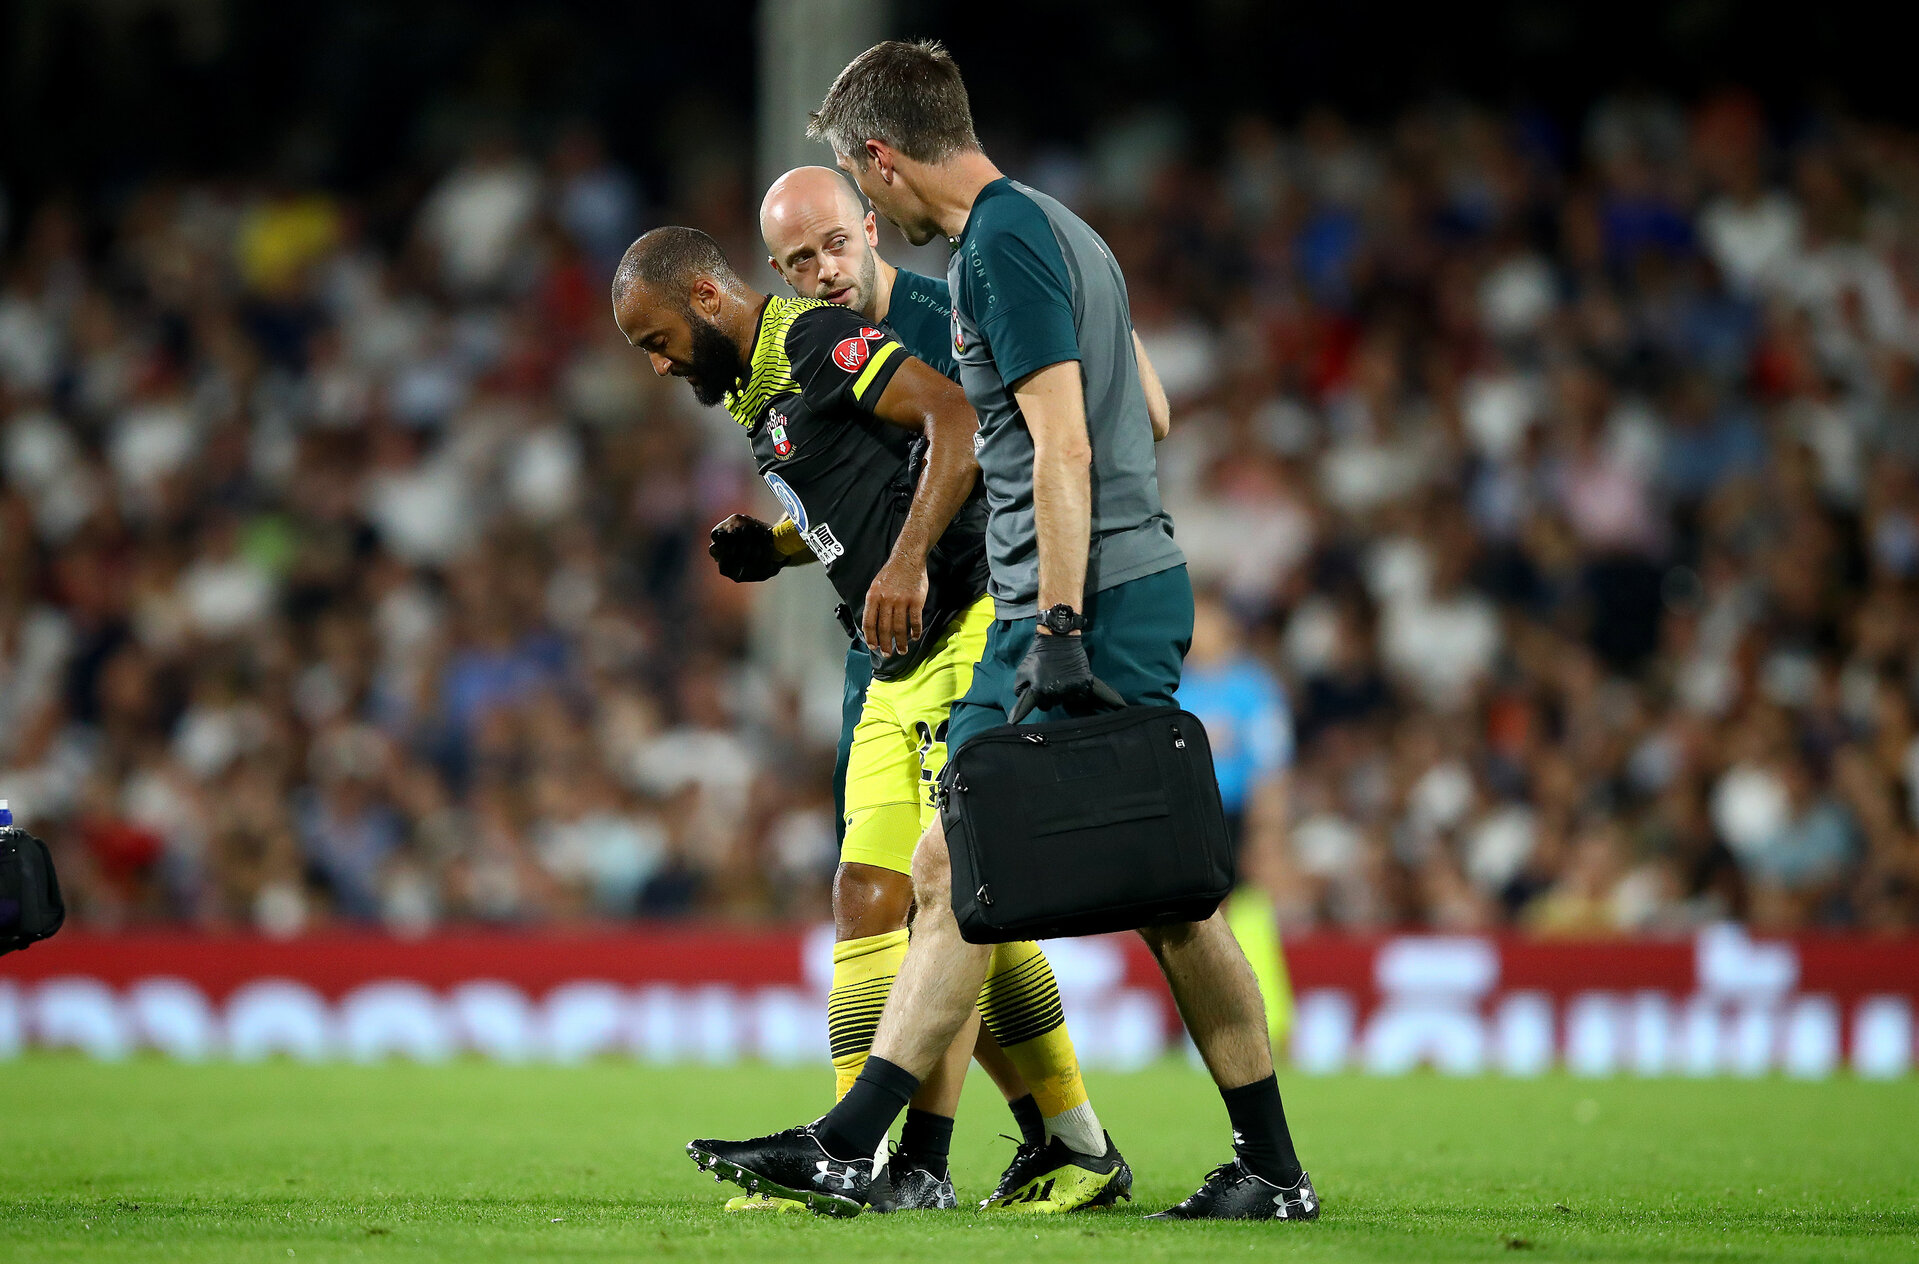 LONDON, ENGLAND - AUGUST 27: Nathan Redmond of Southampton picks up an injury during the Carabao Cup second round match between Fulham and Southampton FC at Craven Cottage on August 27, 2019 in London, England. (Photo by Matt Watson/Southampton FC via Getty Images)